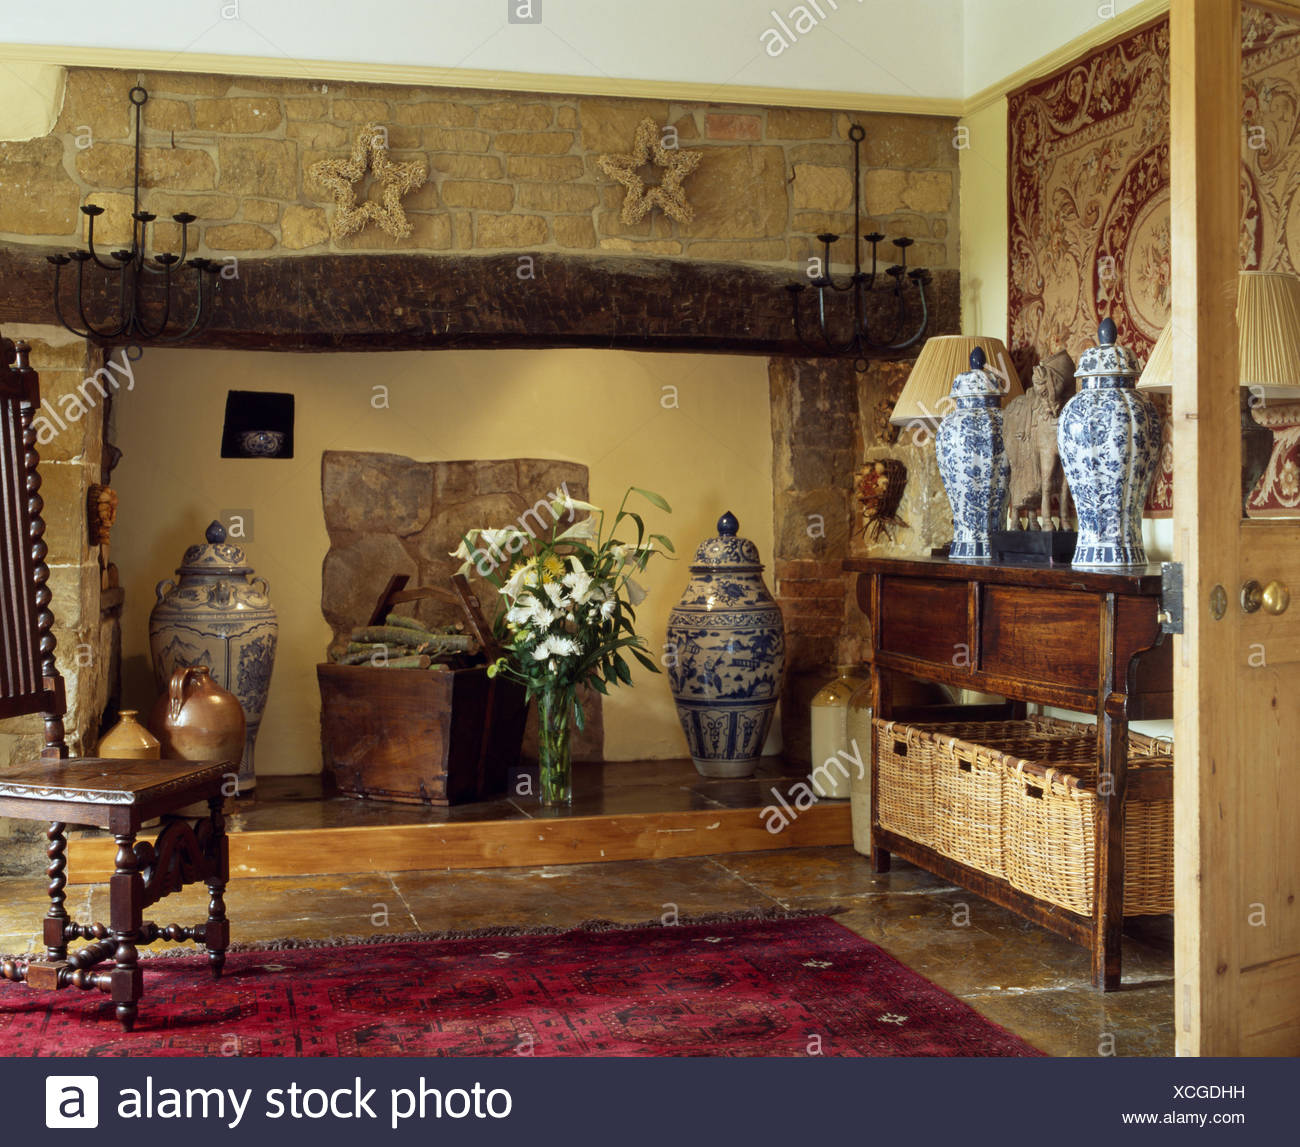 Inglenook Fireplace In Country Hall With Blue And White Vases On